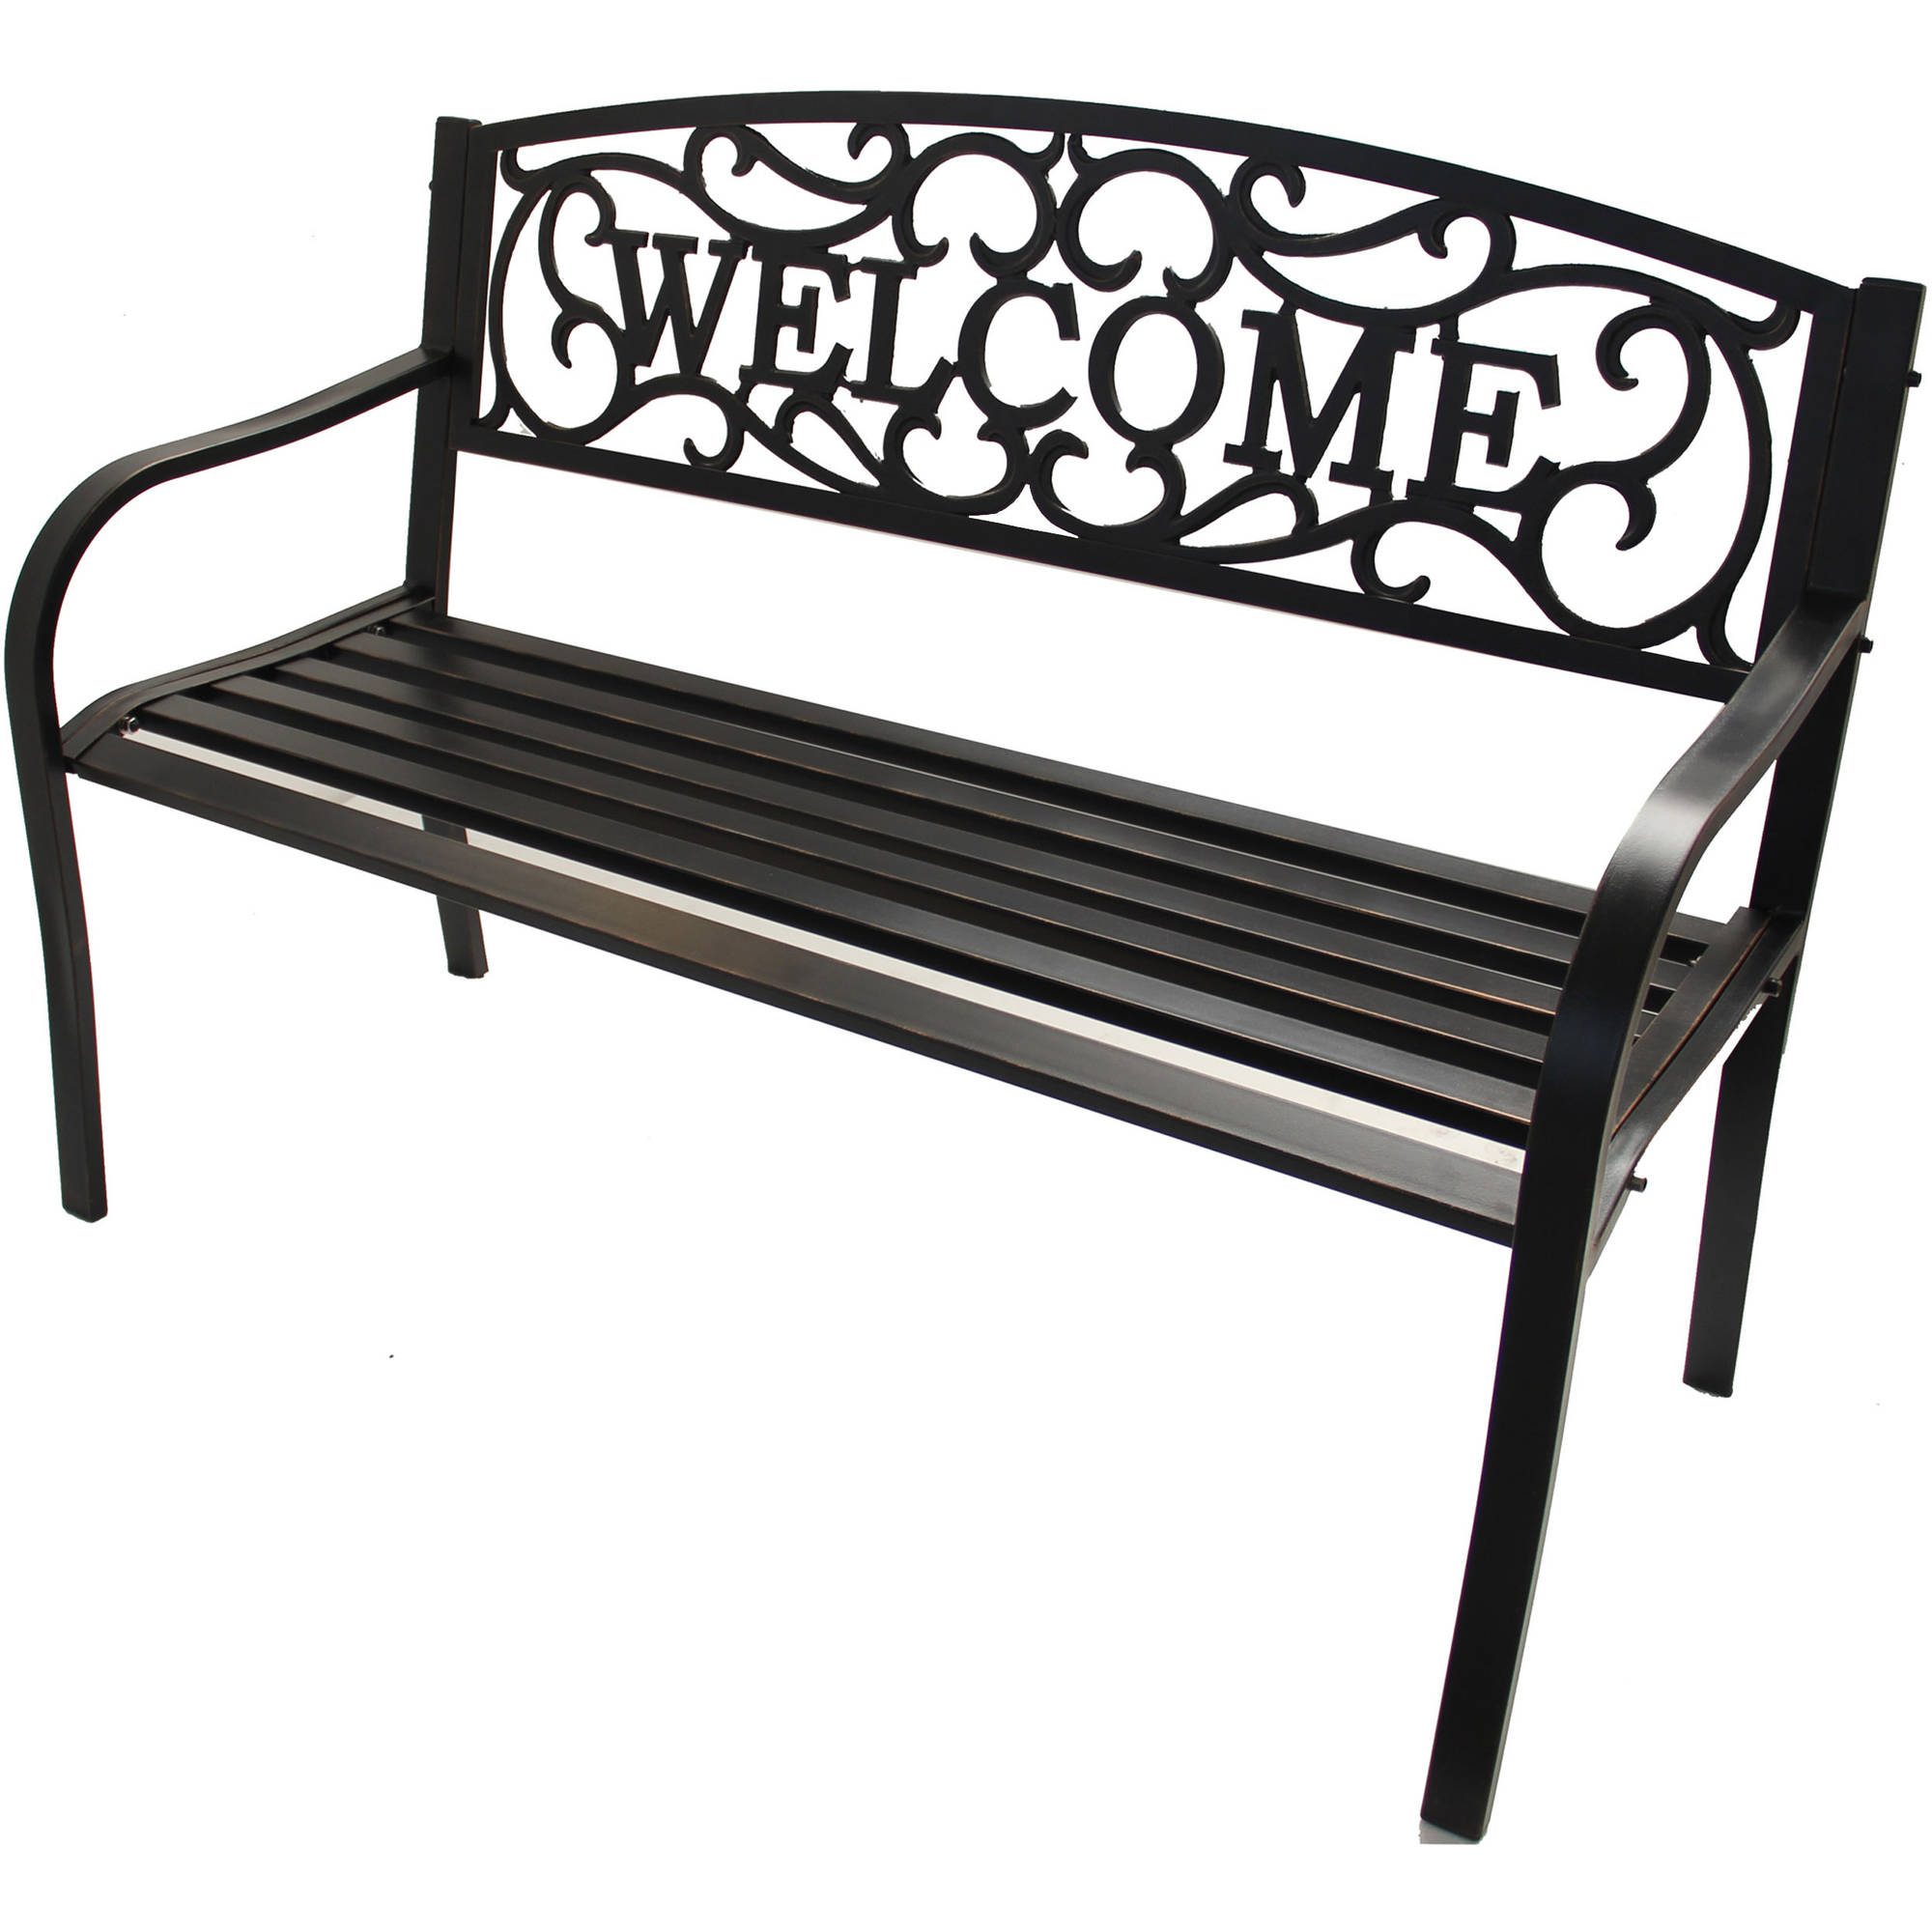 Better Homes and Gardens Welcome Garden Bench